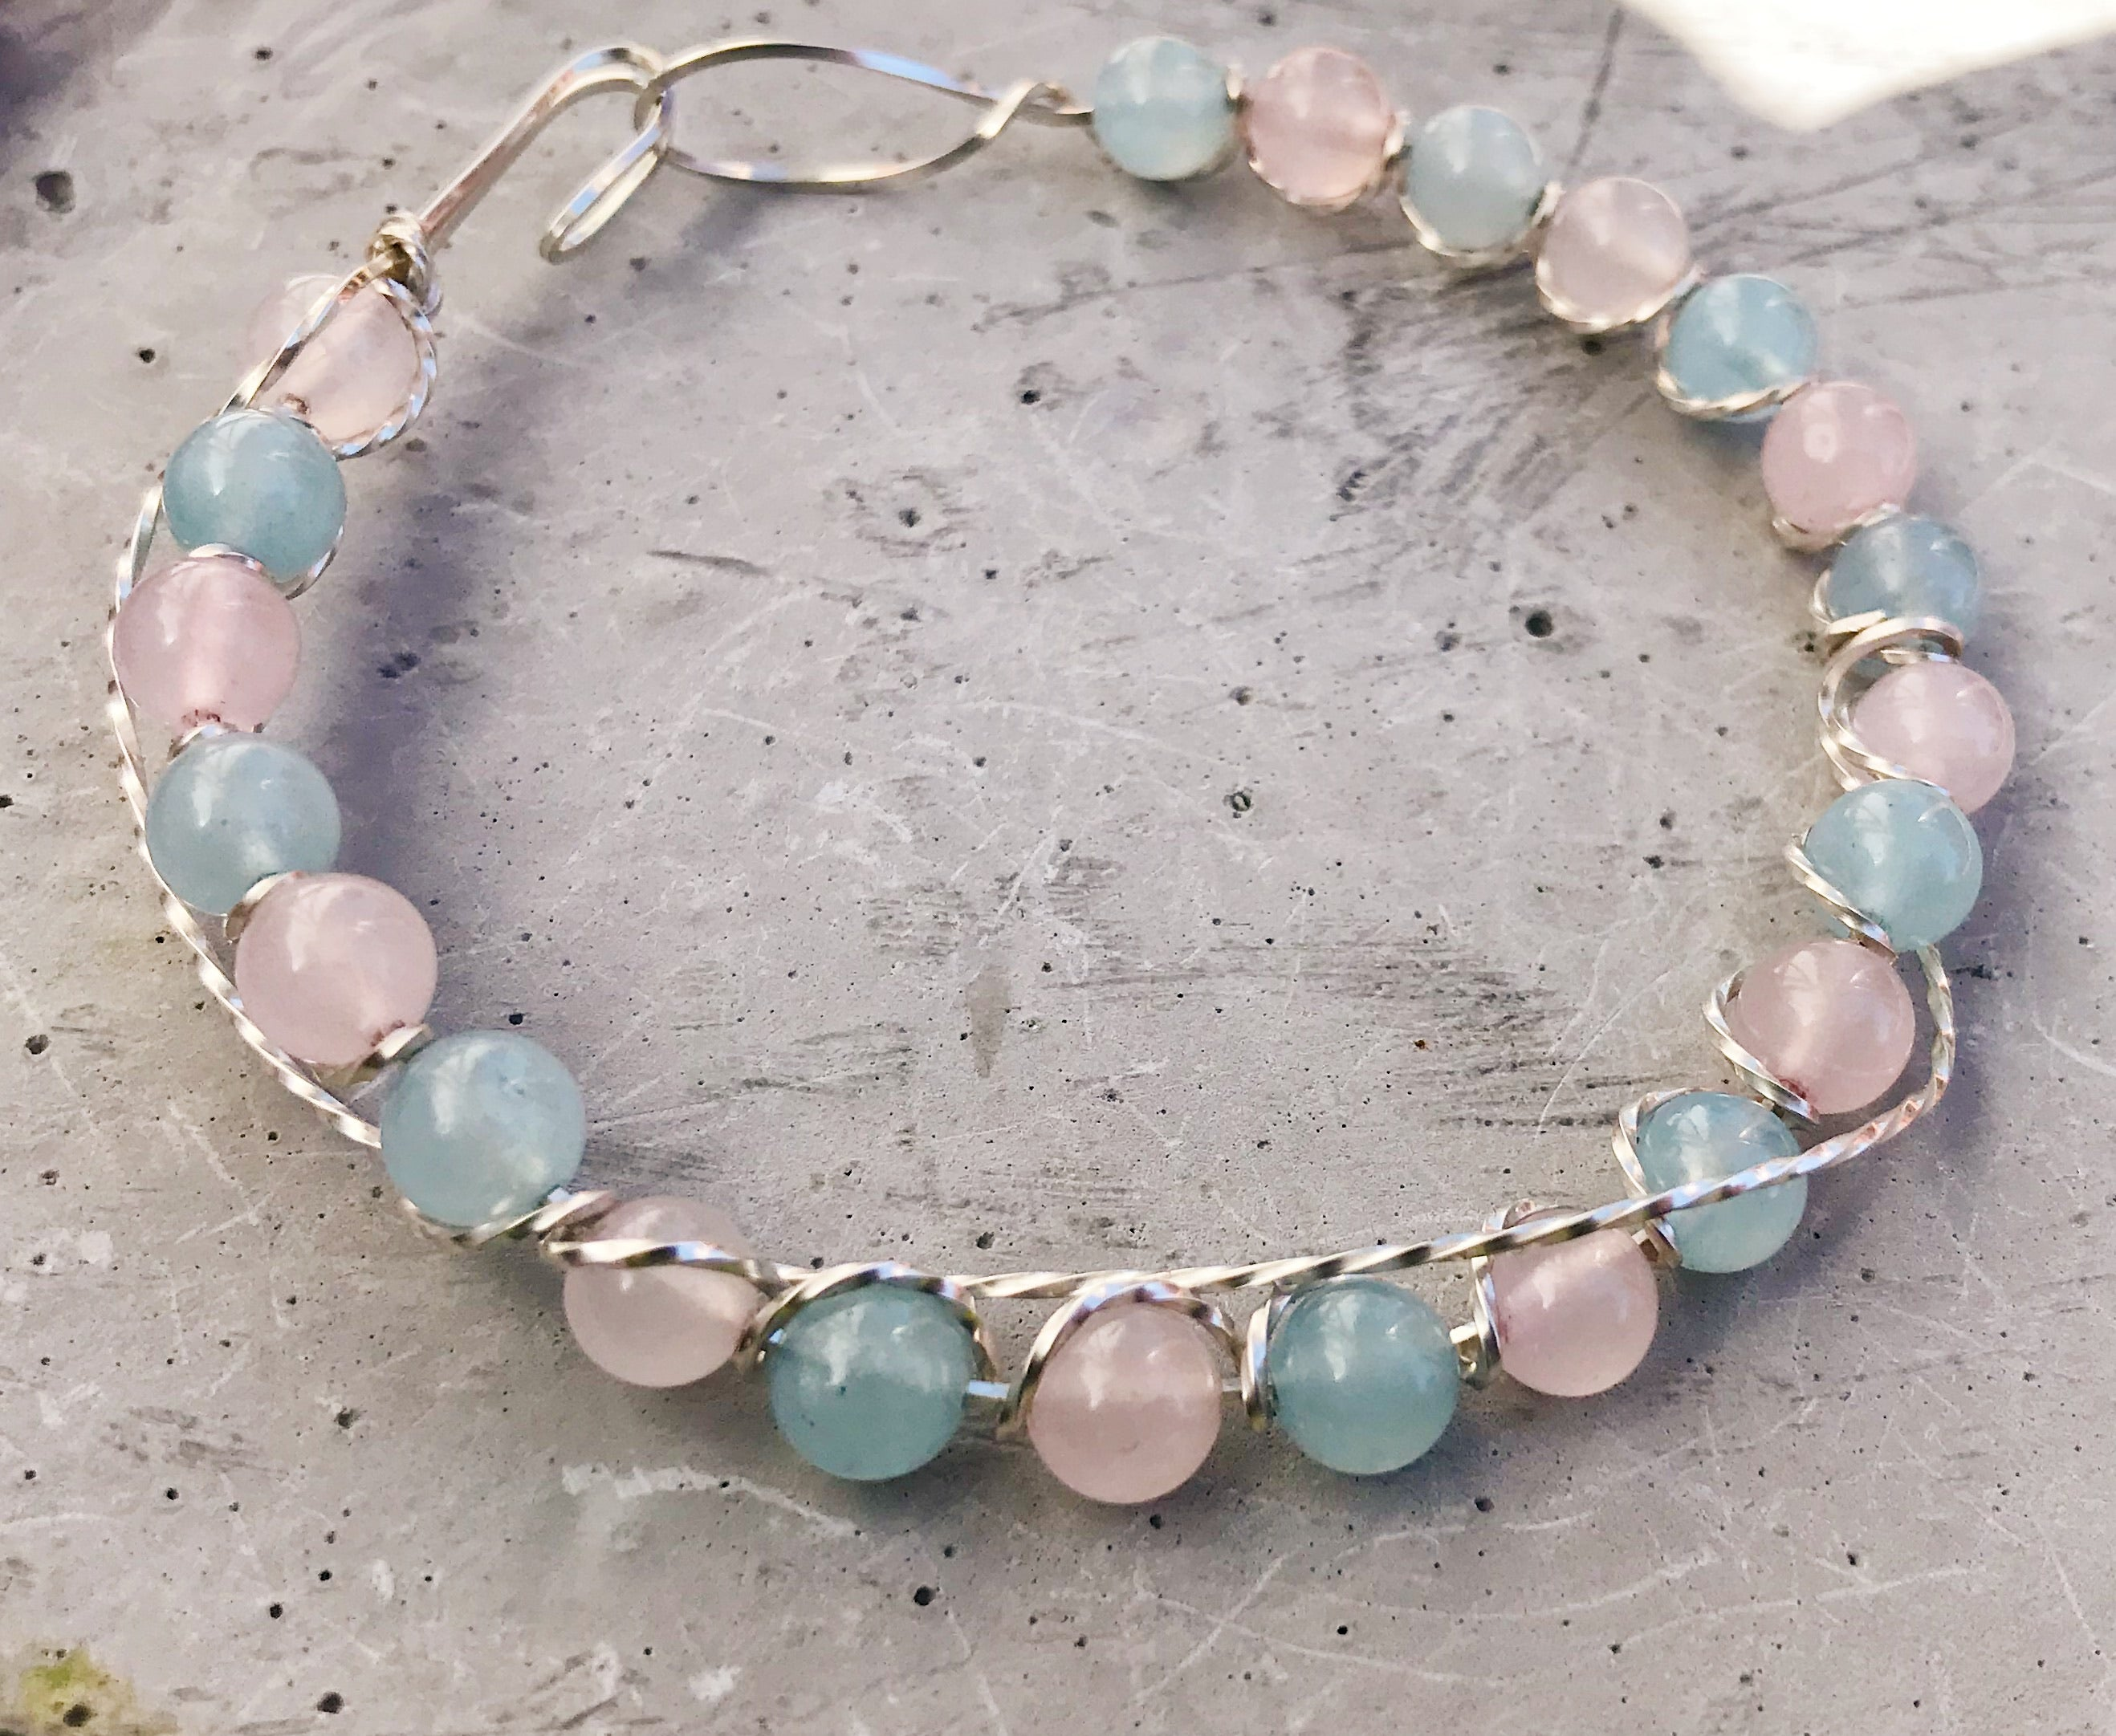 Aquamarine and Rose Quartz Bracelet in Silver